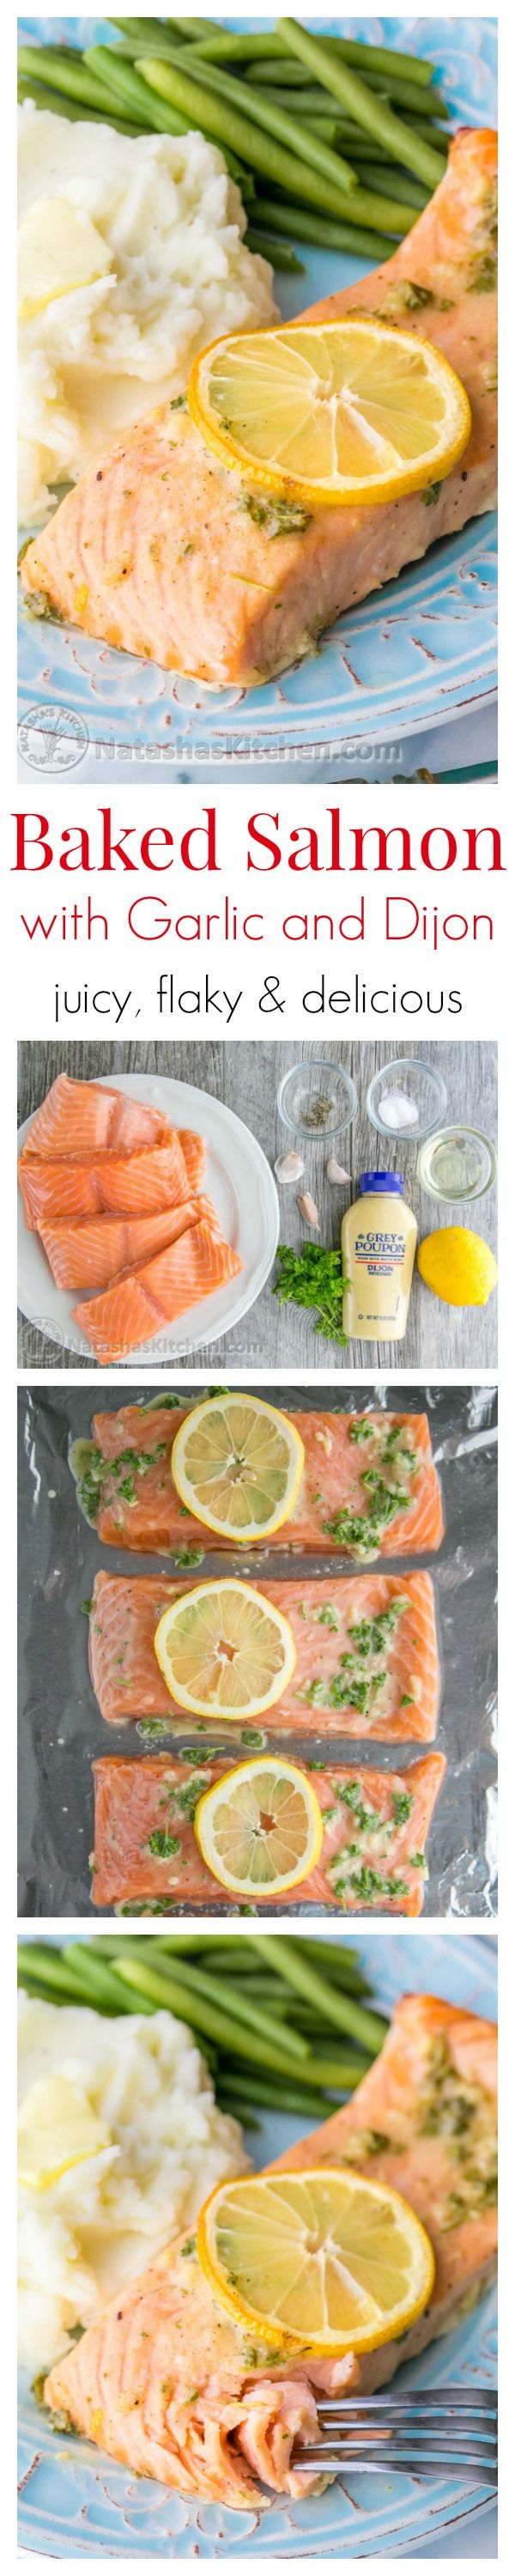 Our Favorite Baked Salmon Recipe - juicy, flaky and super delicious. A 5-Star recipe!! | natashaskitchen.com